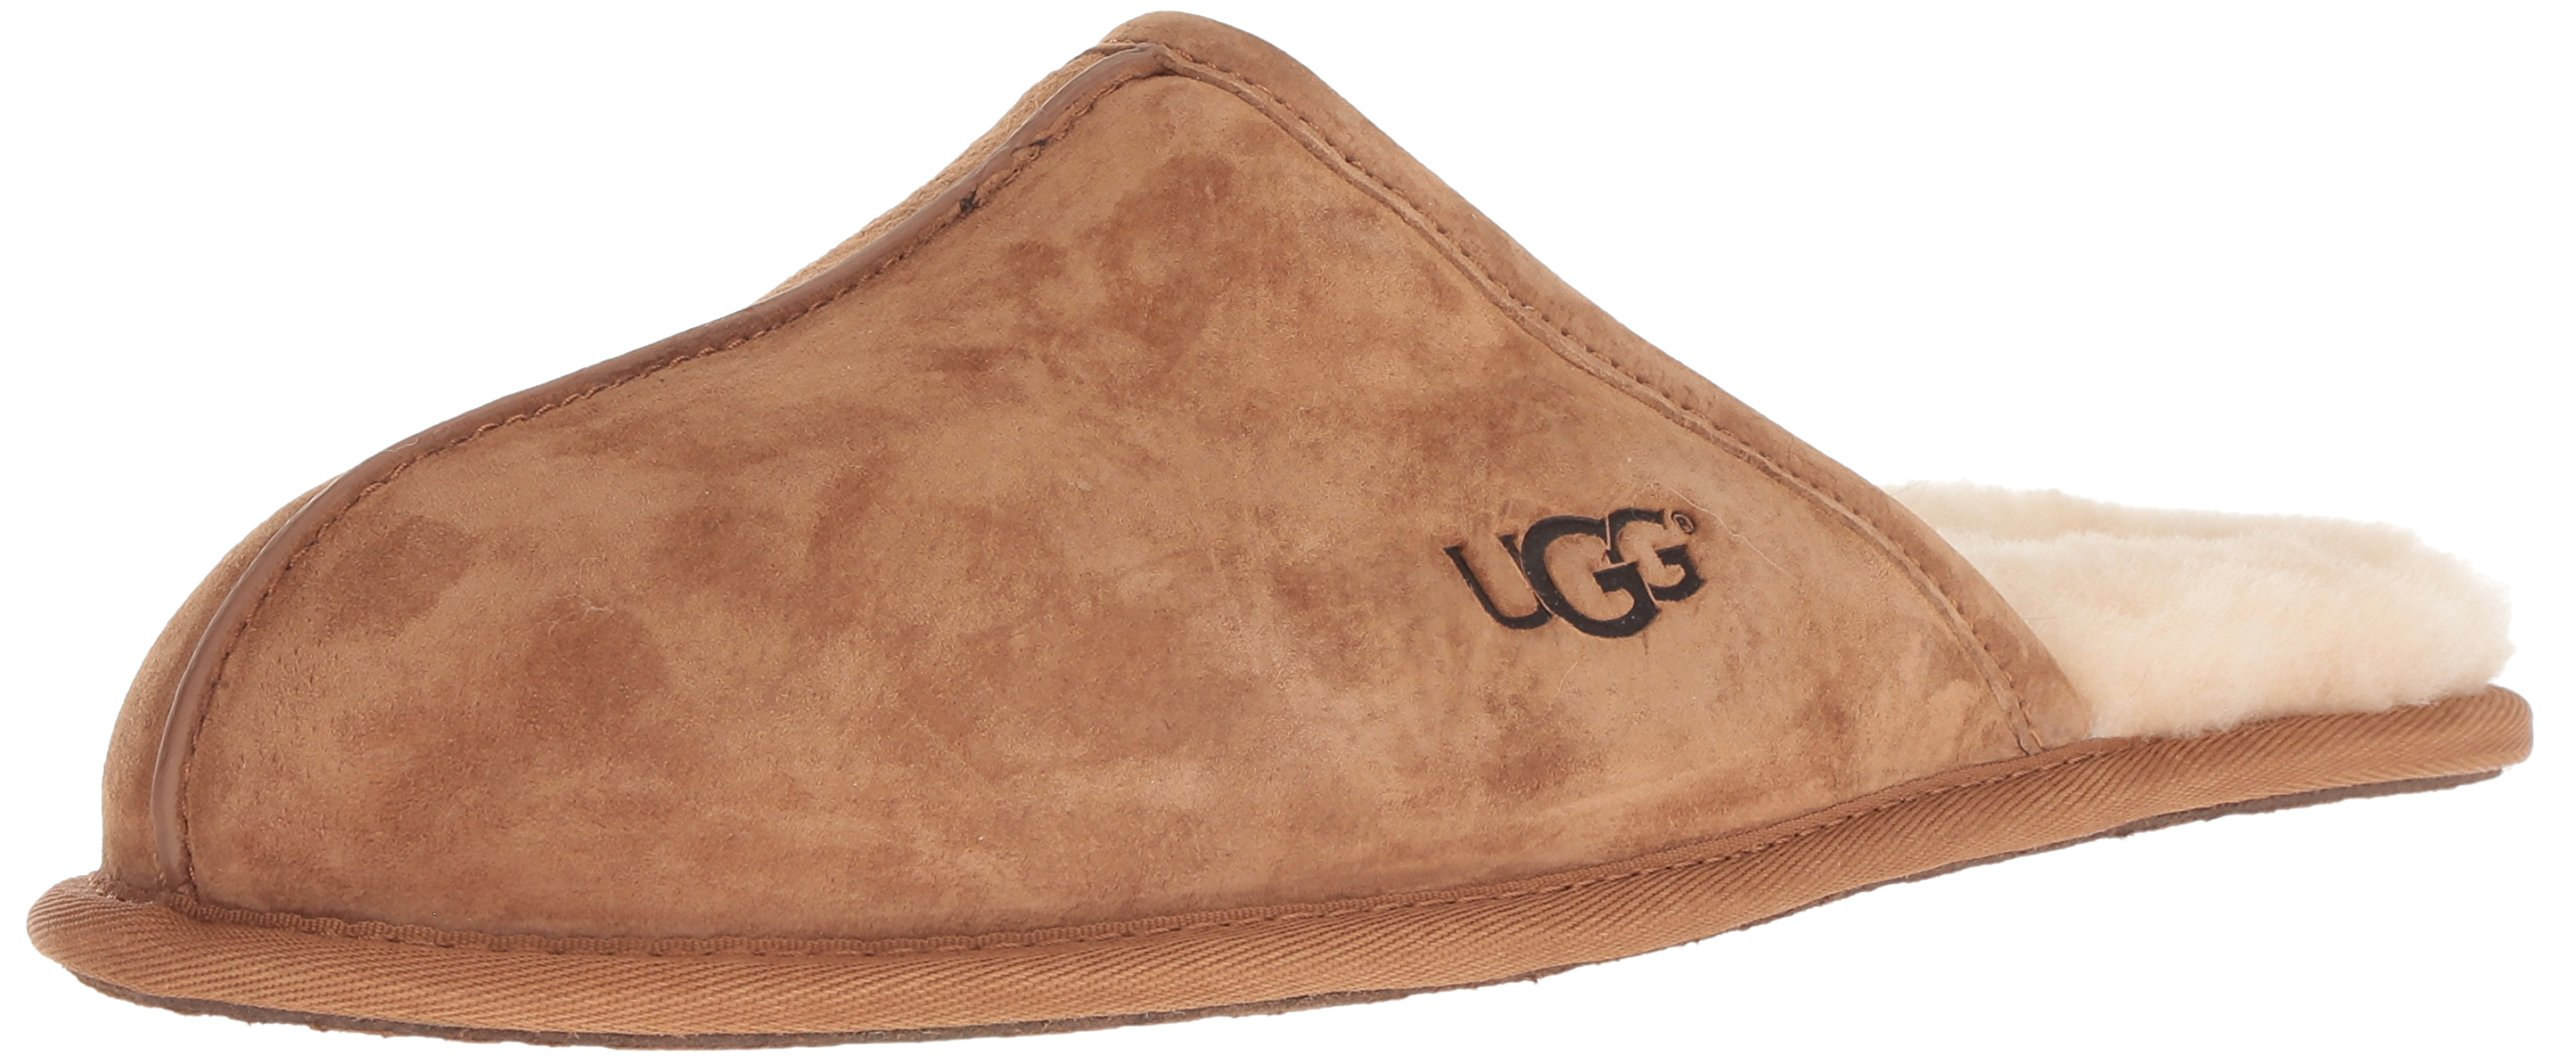 UGG Men's Scuff Slipper Chestnut 09 M US